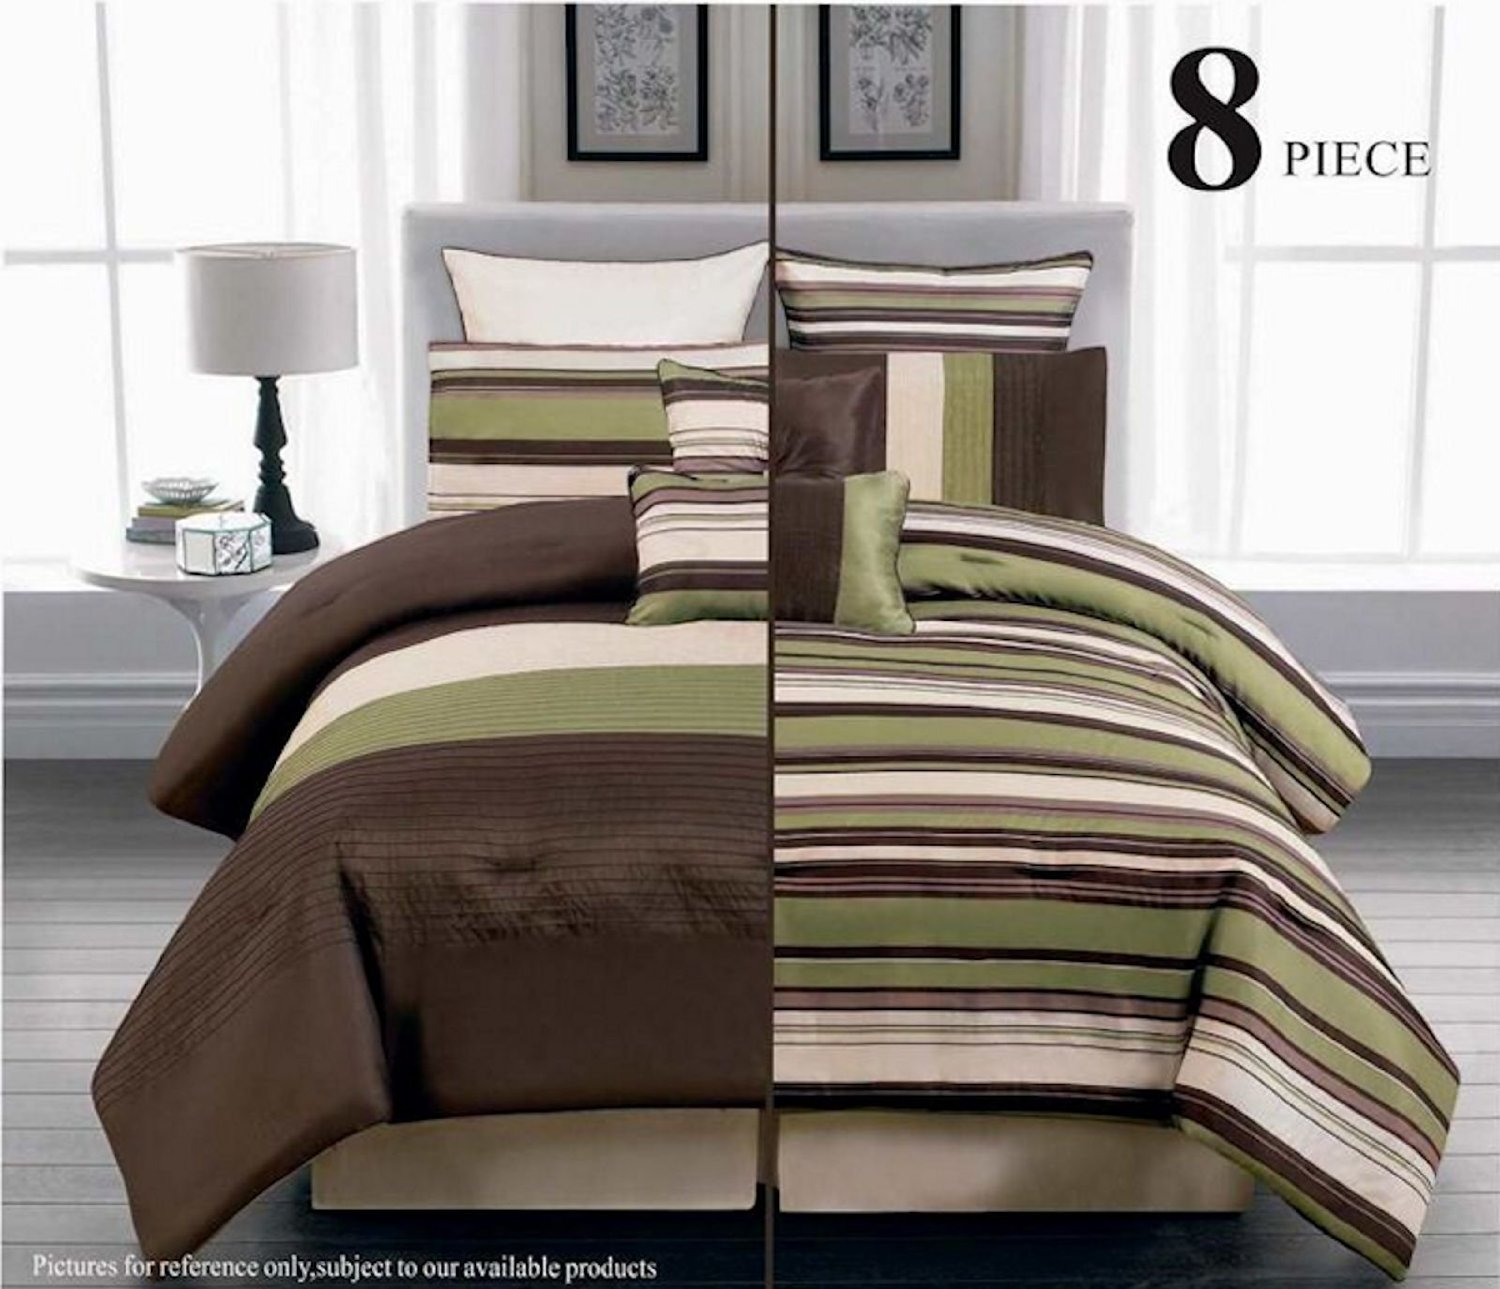 brown king bedding cabin set plaid unlimited ducks full collections texas comforter and lodge bed outdoors big queen sham